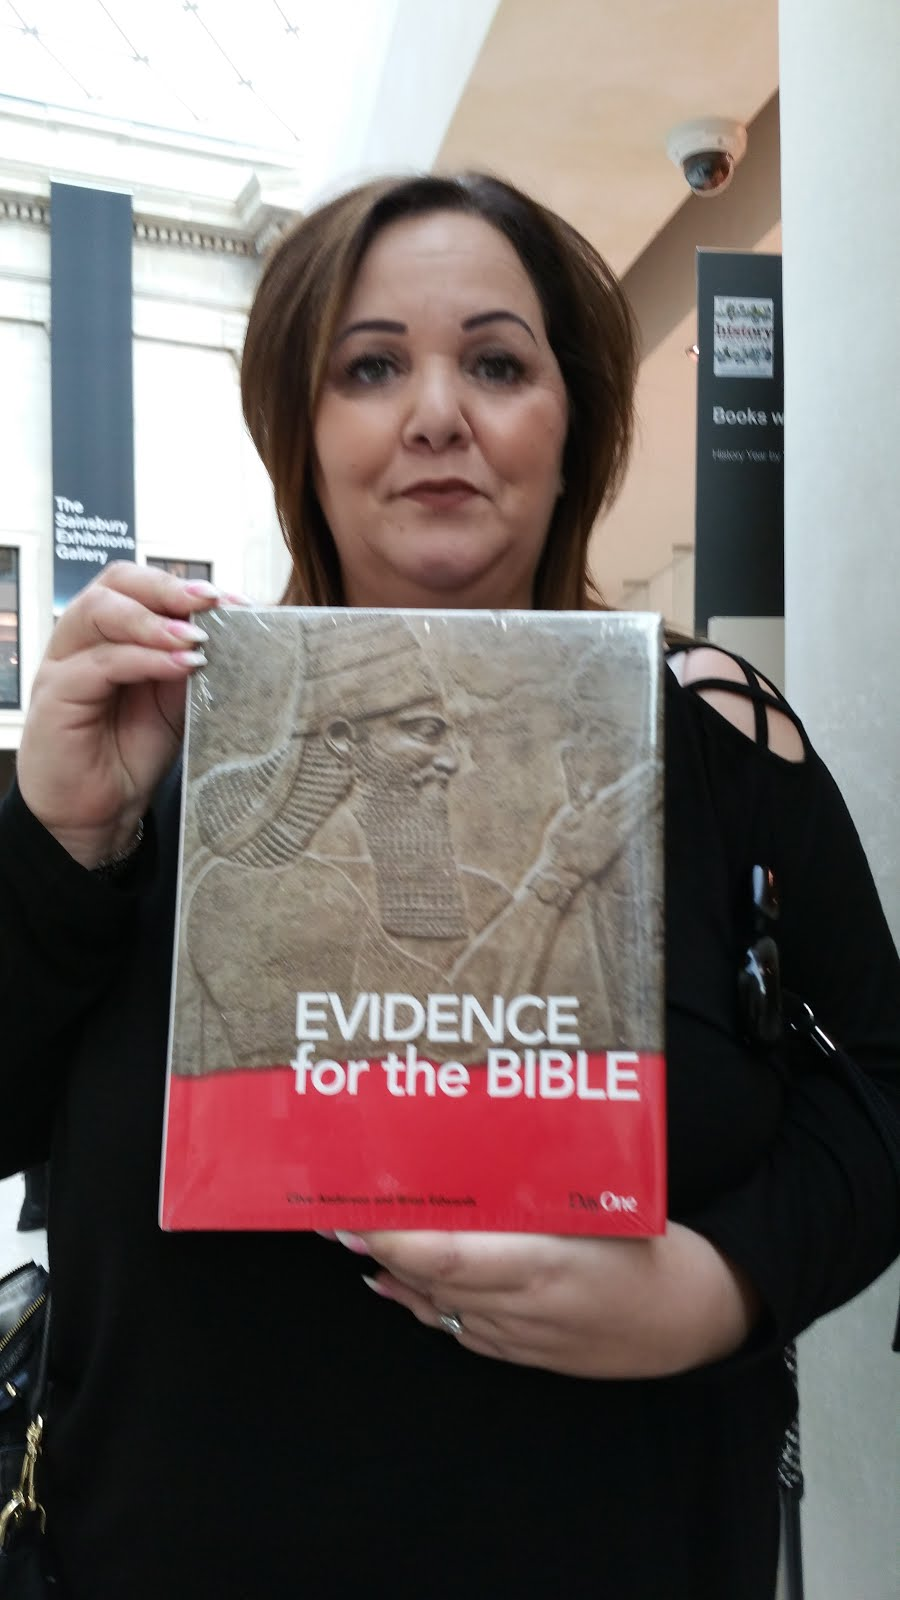 The British Museum has many clay tablets proving the BIBLE.